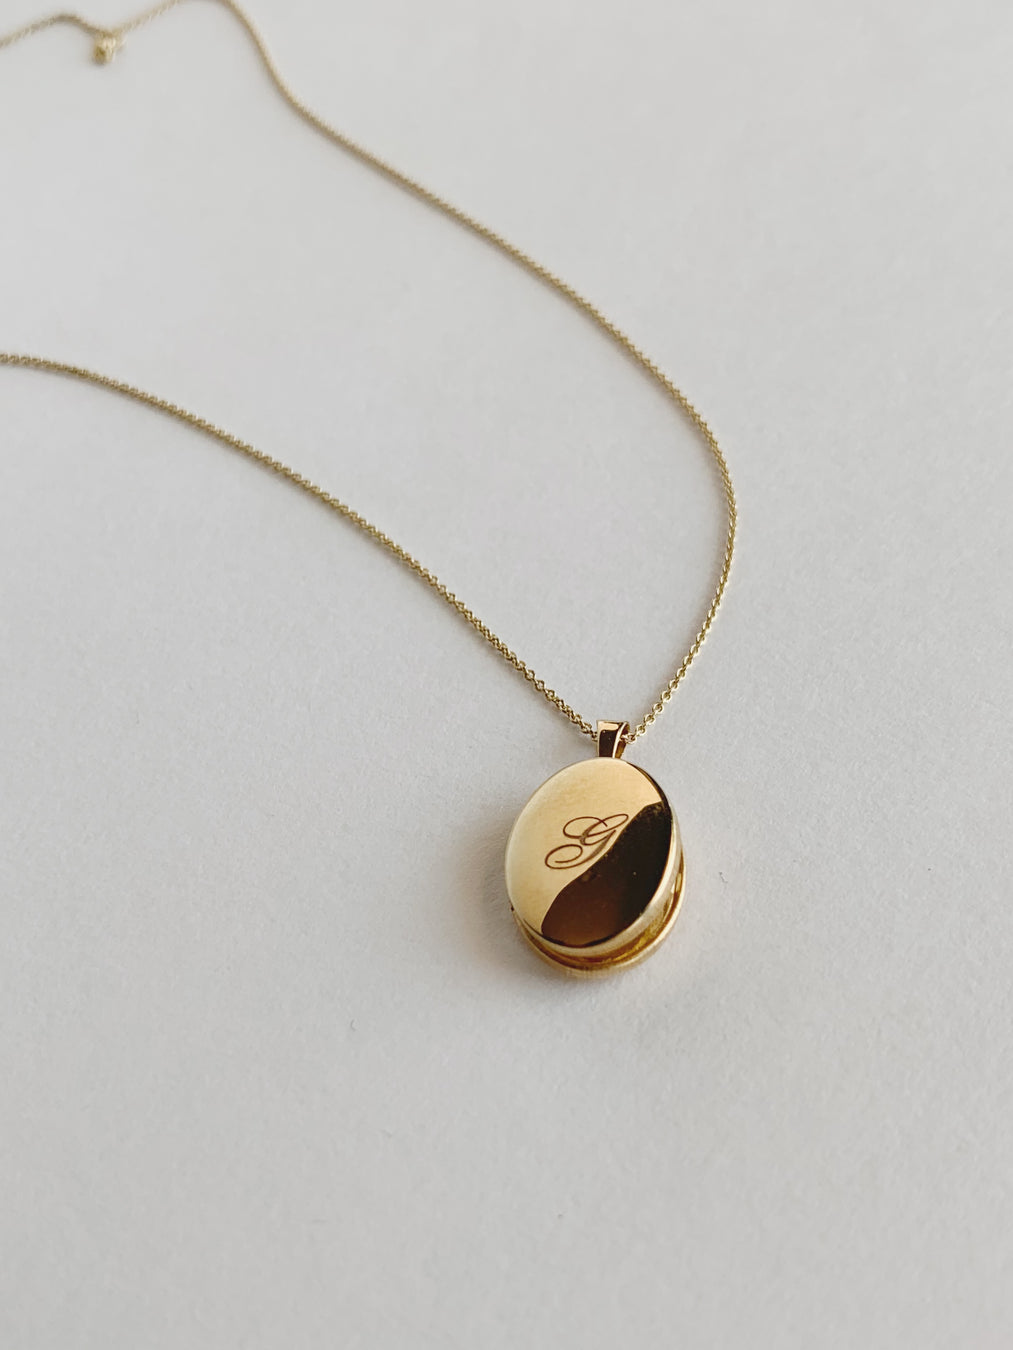 Maison Gold Oval Locket Necklace